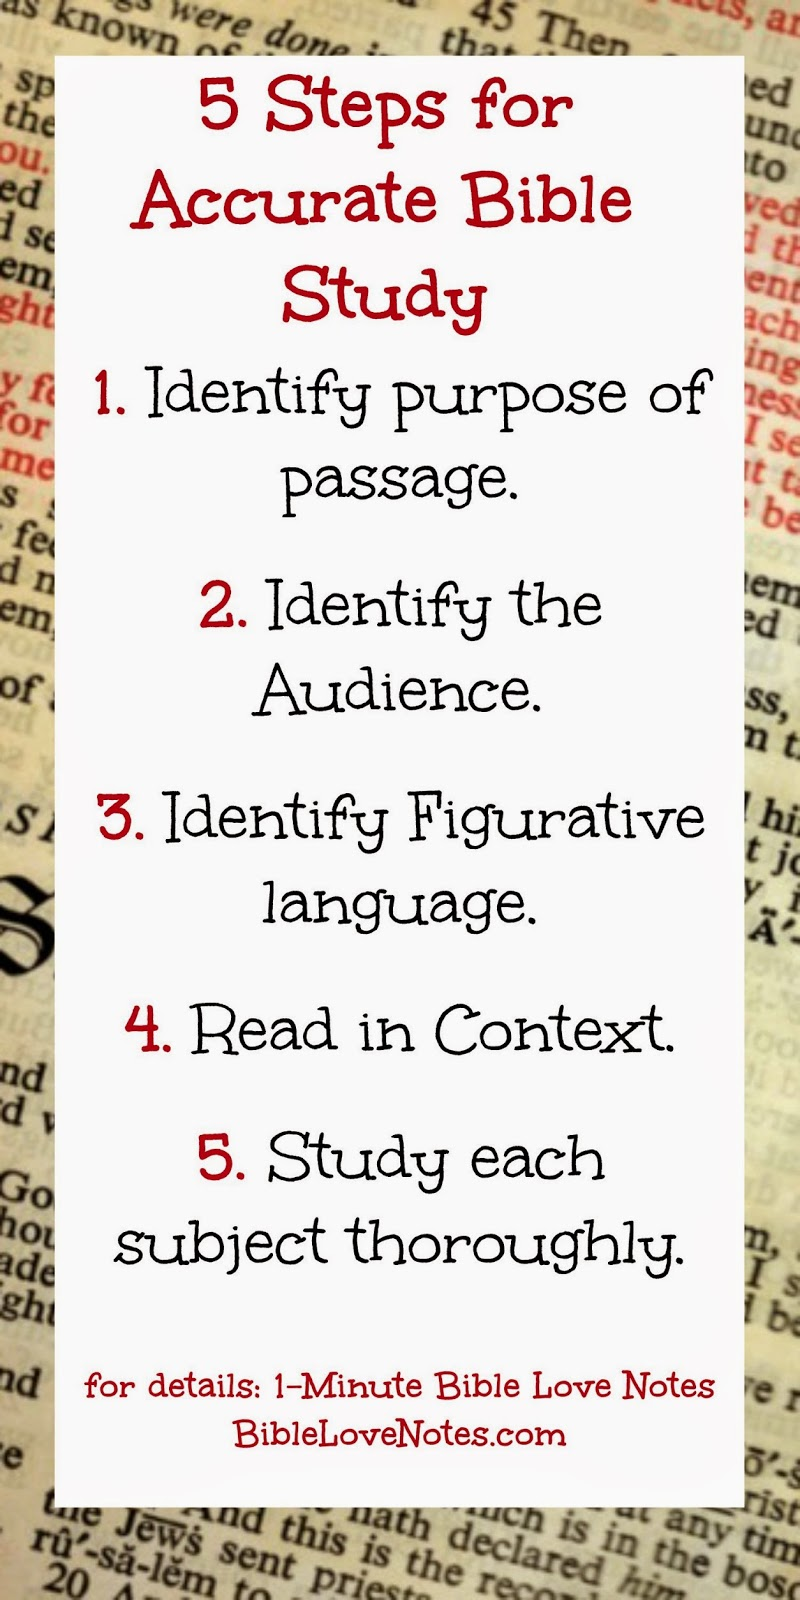 5 Steps for Bible Study, Identify audience, author intent, figurative language in Bible, Context